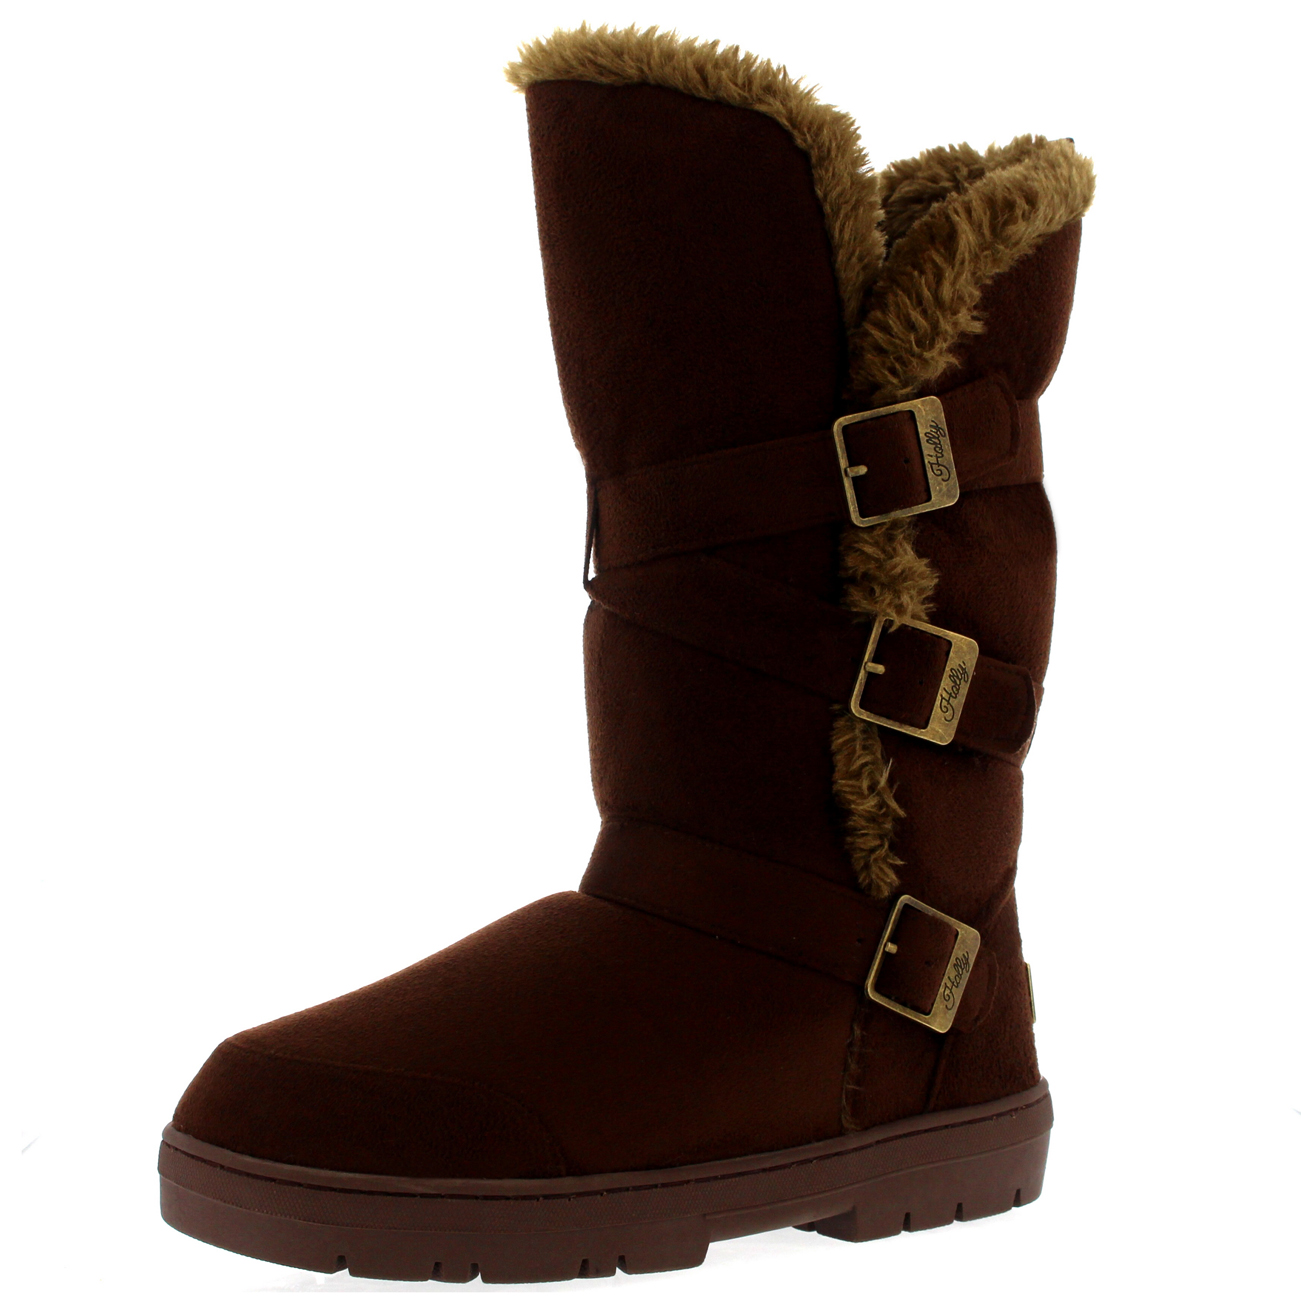 Snow boots womens size 11 – New Fashion Photo Blog